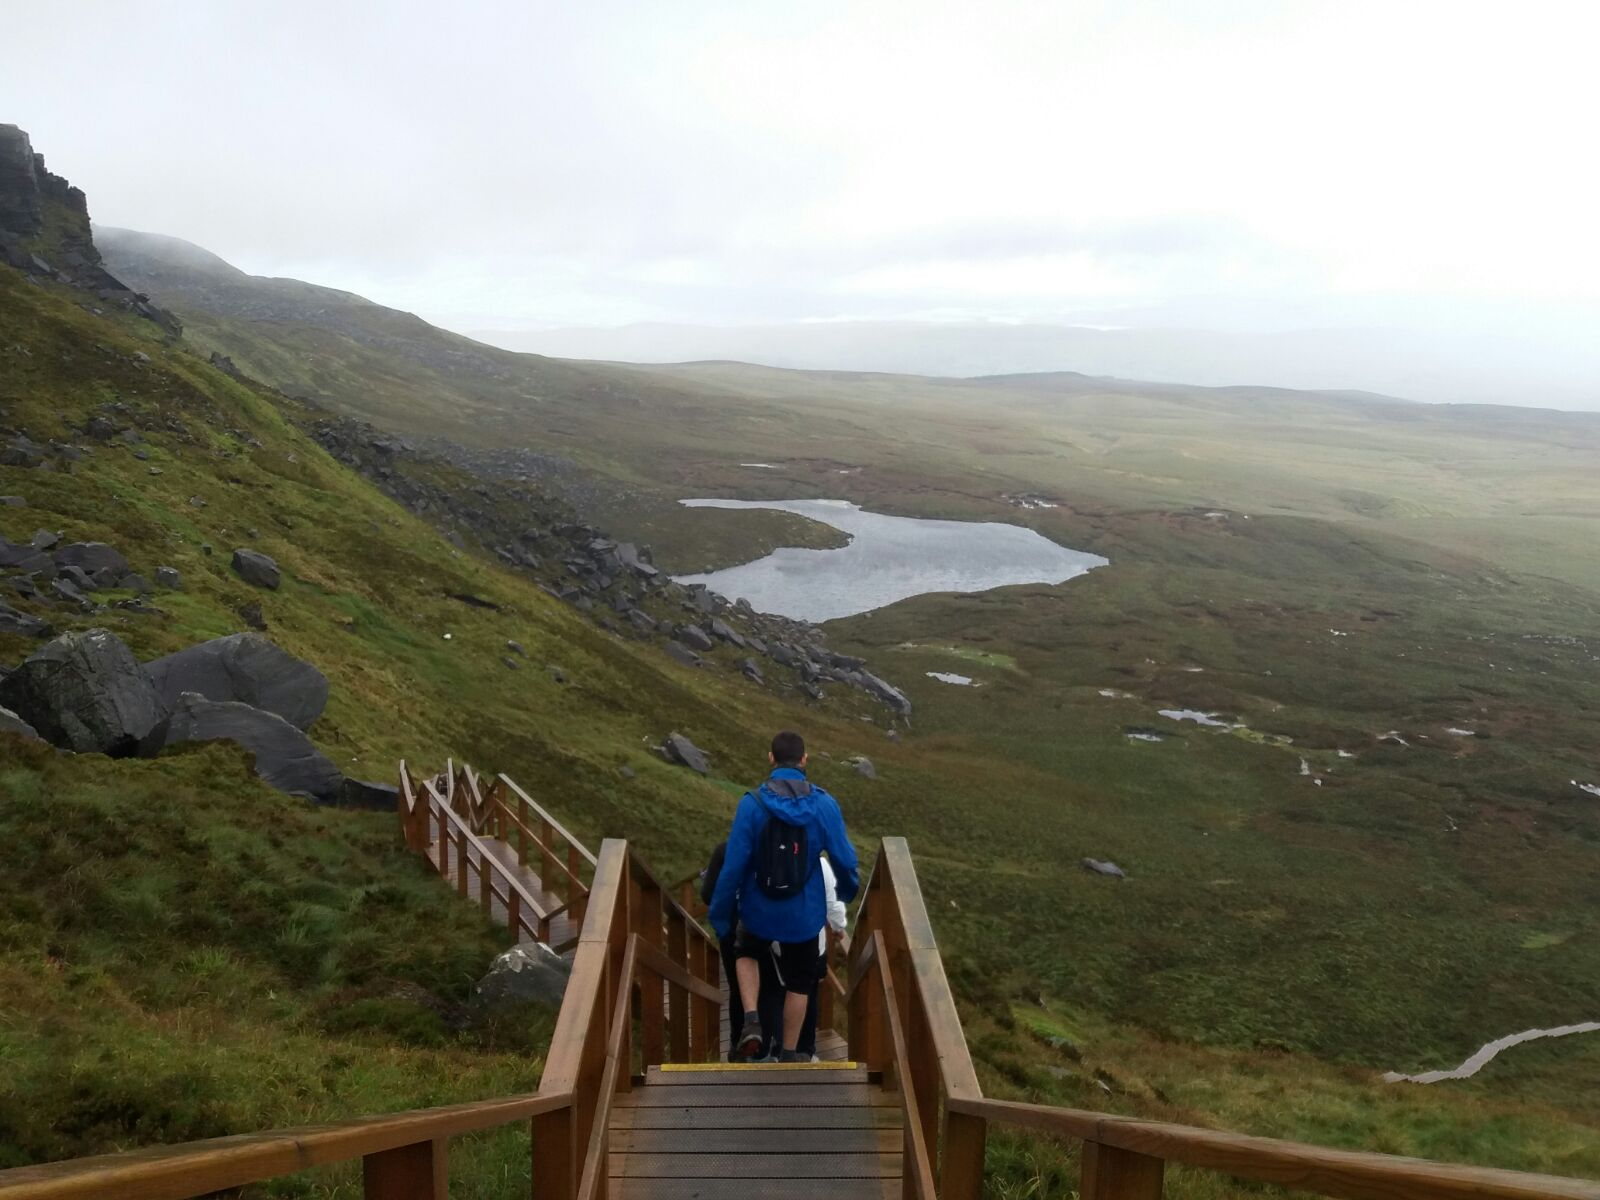 A day on Cuilcagh mountain